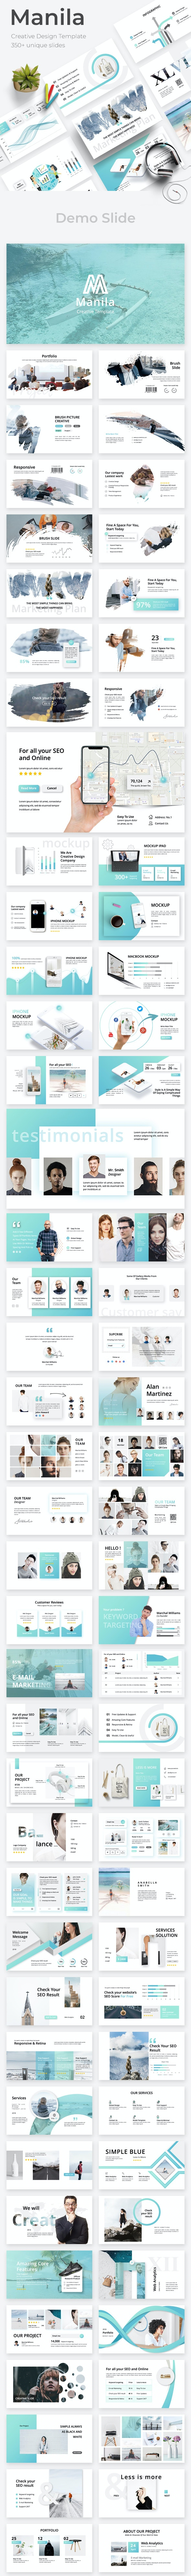 Manila Creative Powerpoint Template - Creative PowerPoint Templates